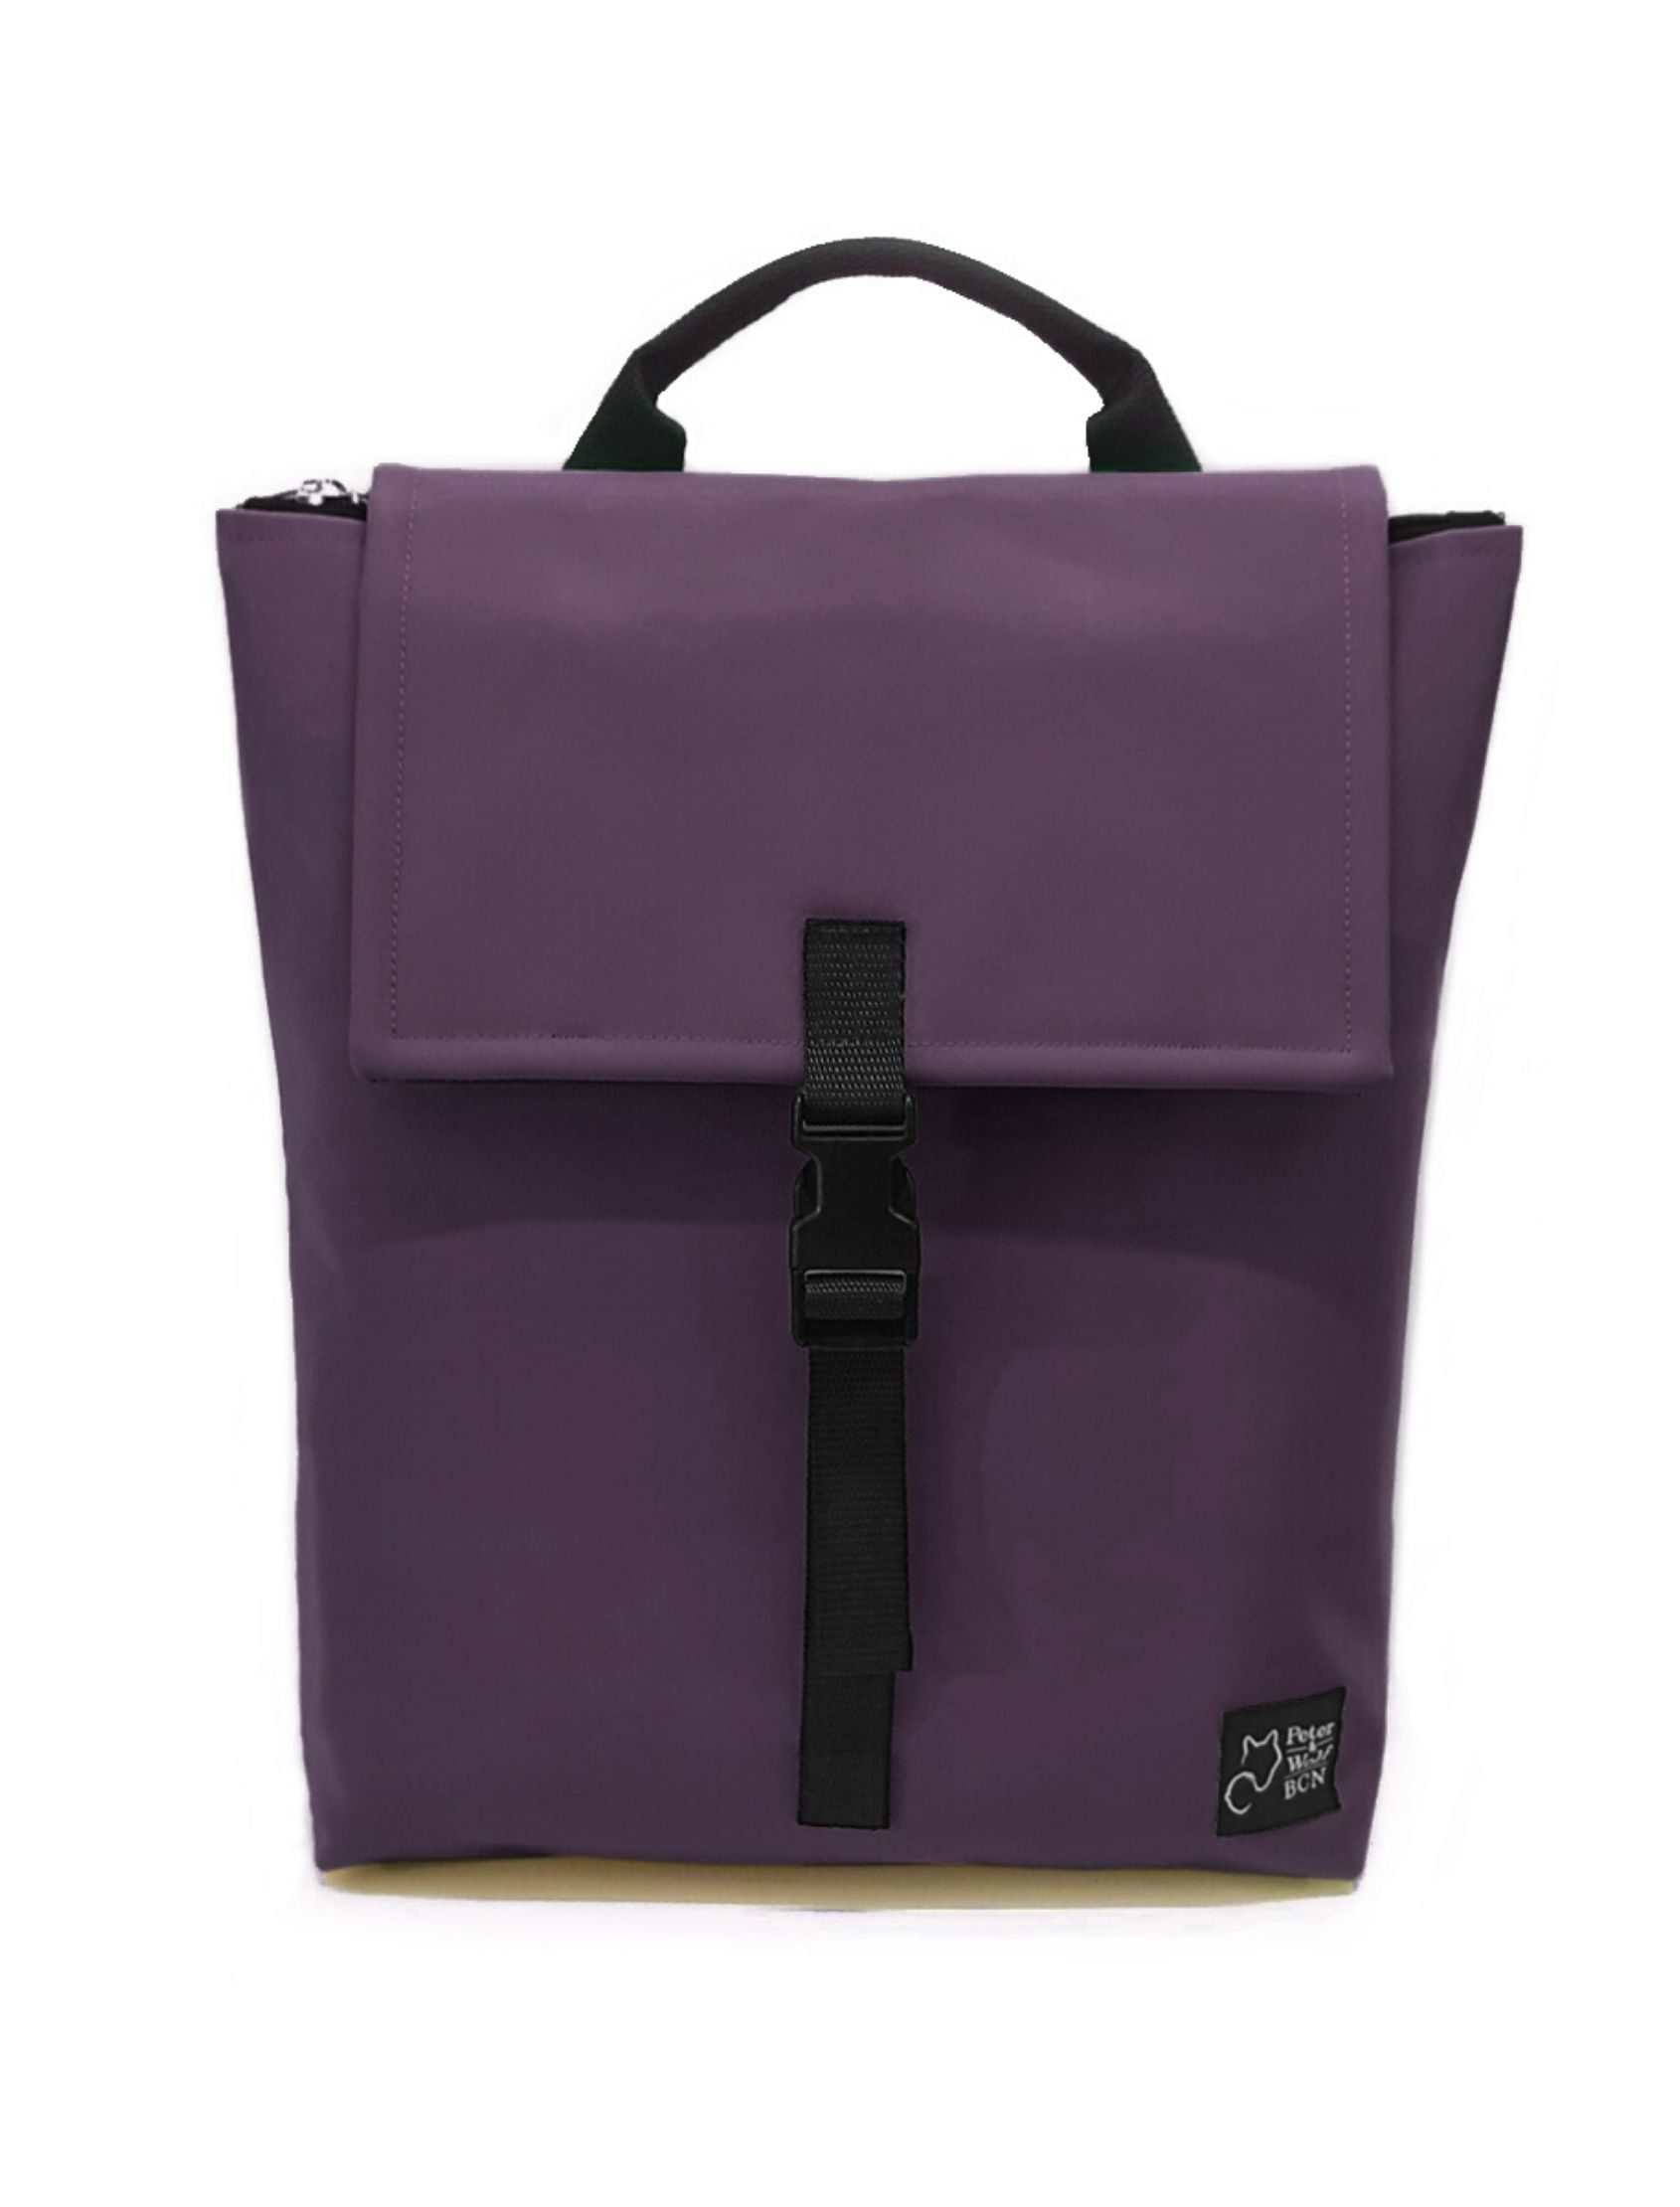 Mochila Nautic Violet de Peter&Wolf